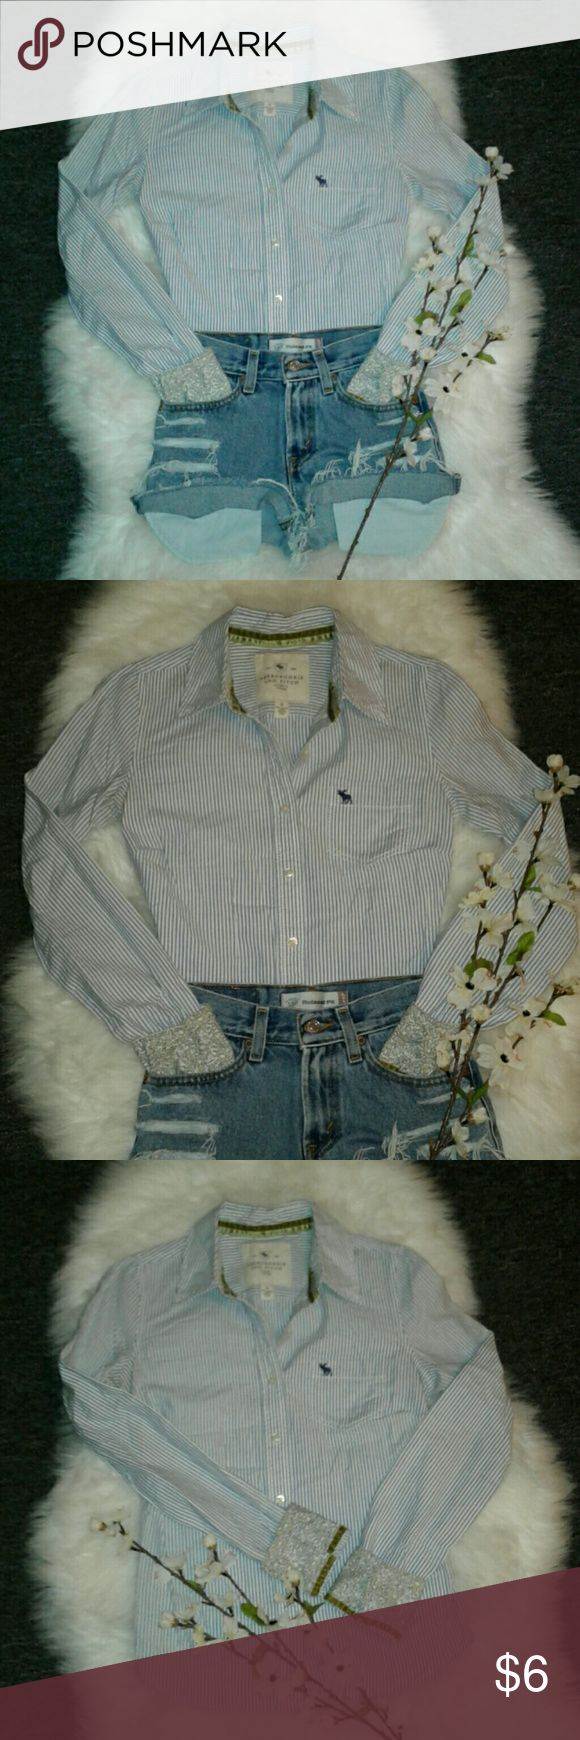 """A&F Pin Stripe Button Up Shirt Excellent condition  No flaws 100% cotton Bust: 20"""" (arm pit to arm pit) Length: 24.5"""" (shoulder to bottom hem) Abercrombie & Fitch Tops Button Down Shirts"""